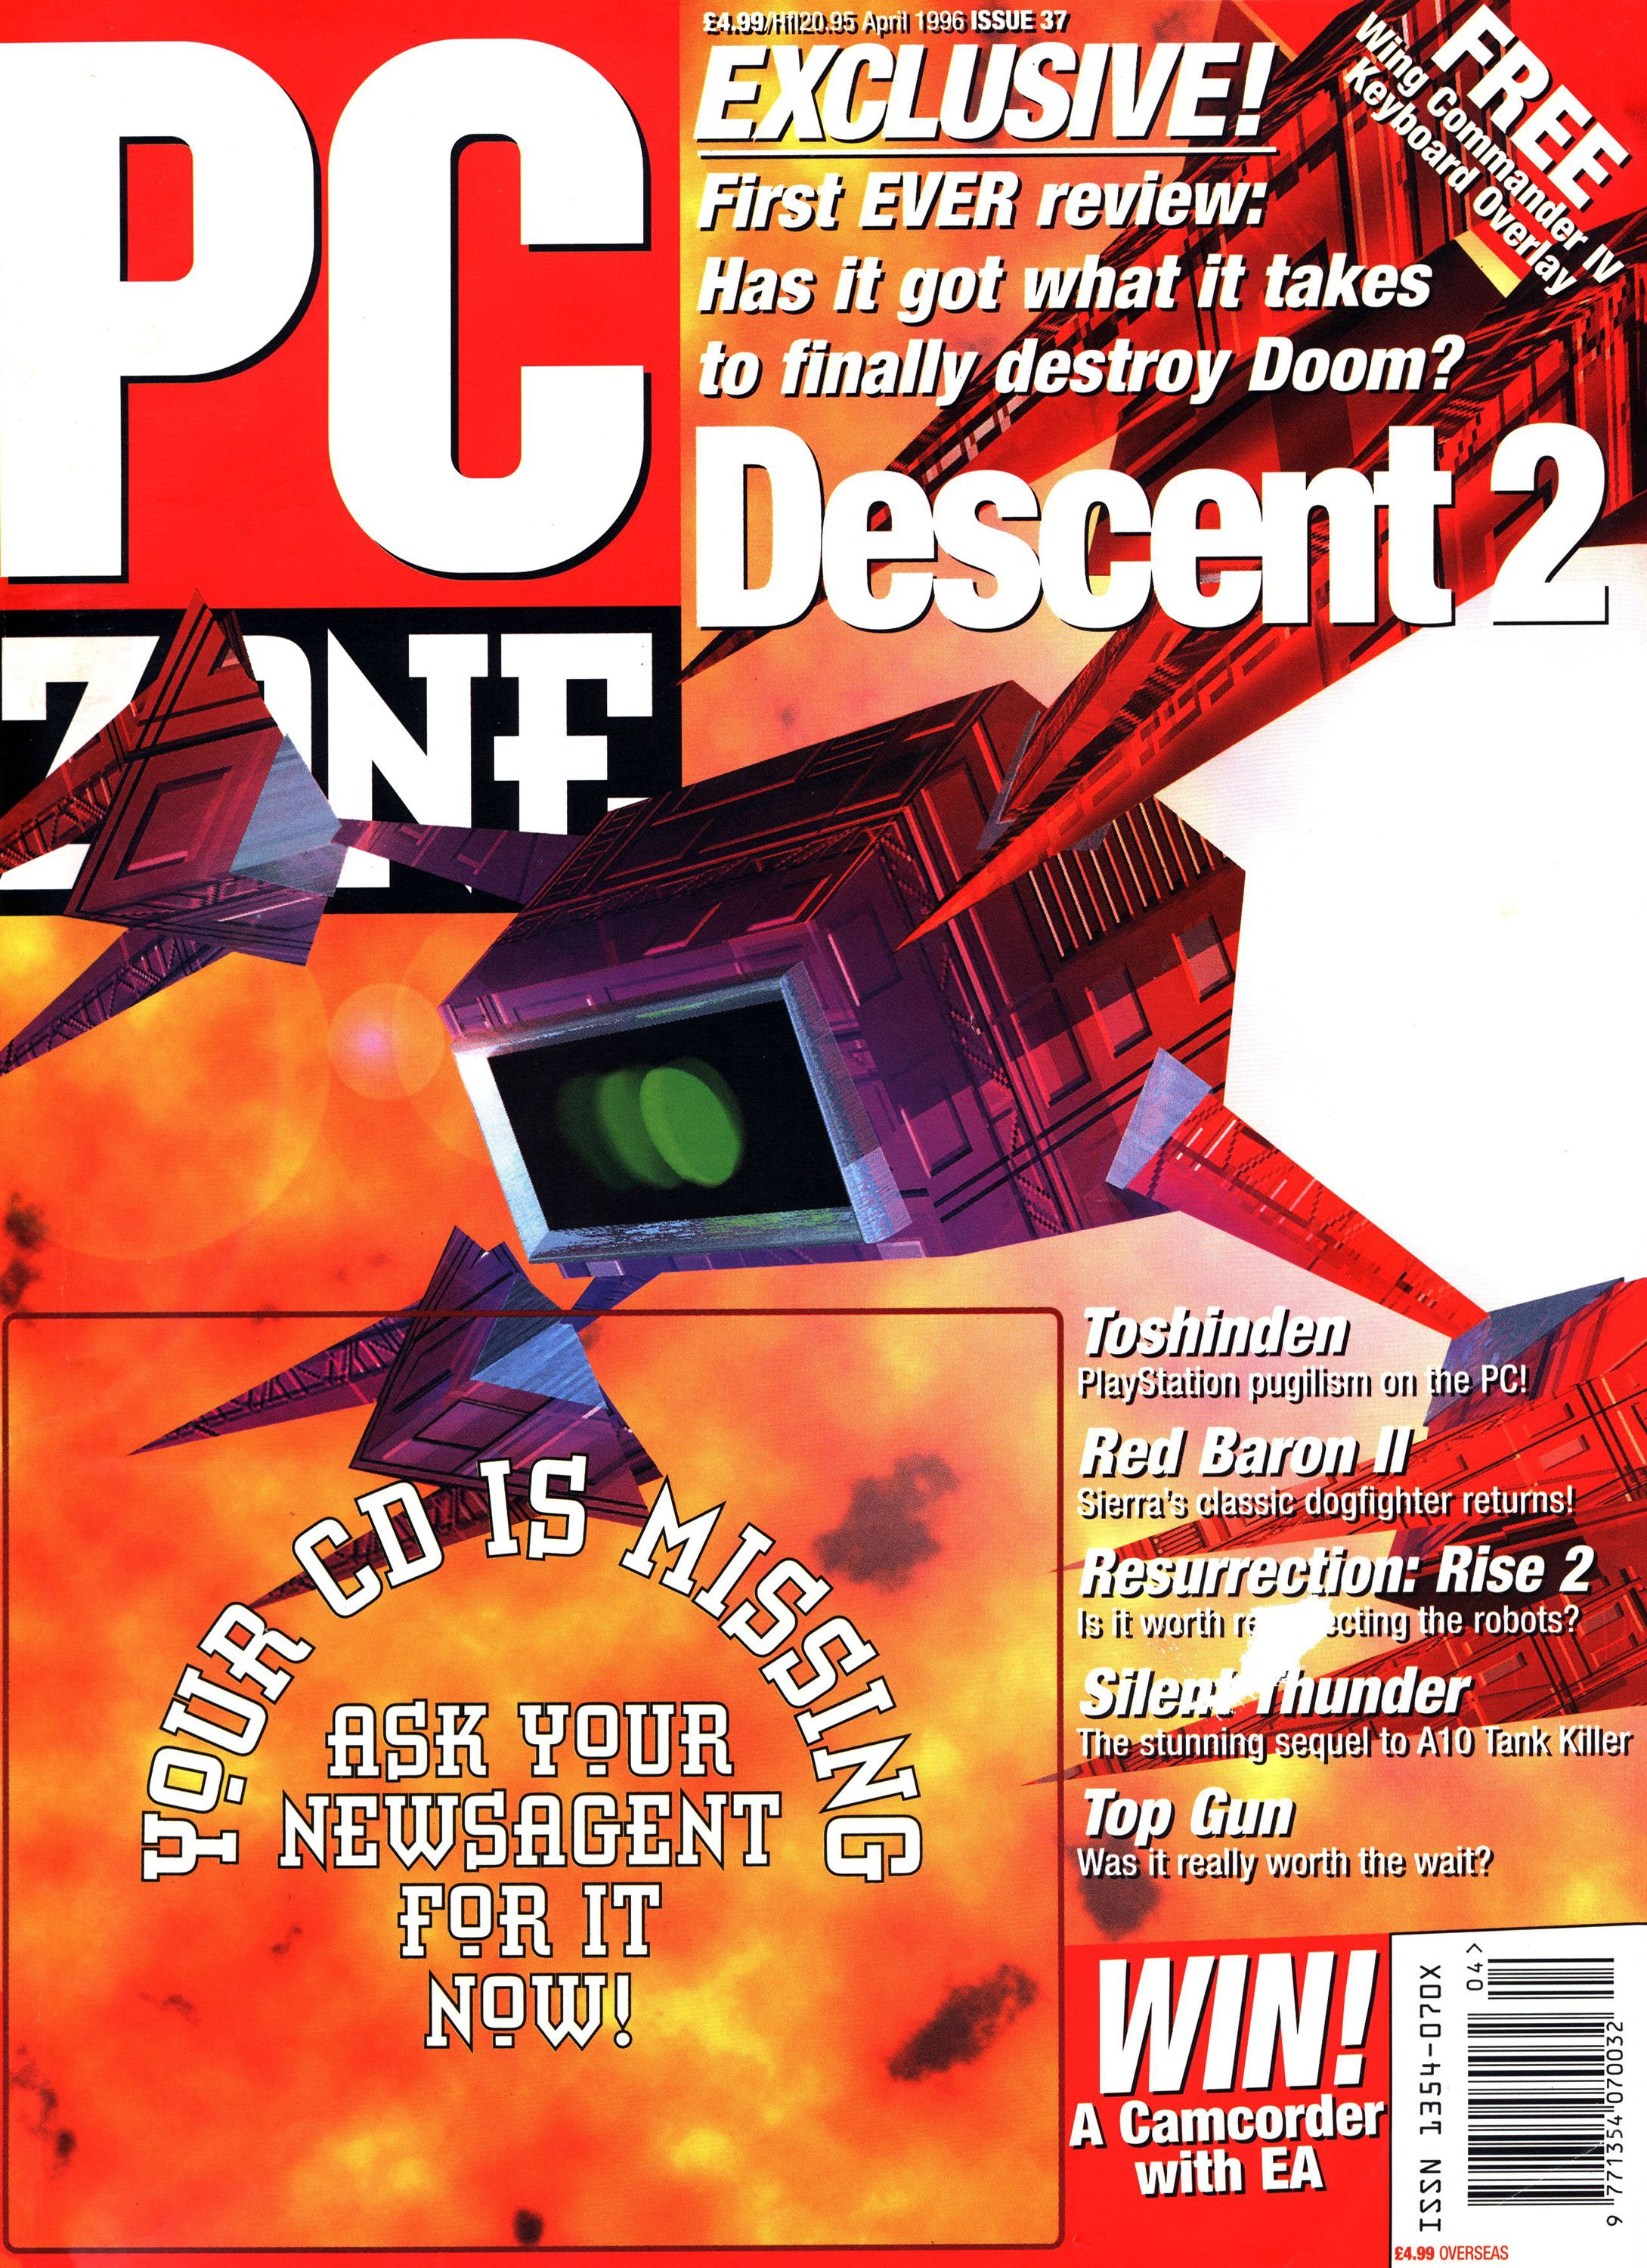 PC Zone Issue 037 (April 1996)